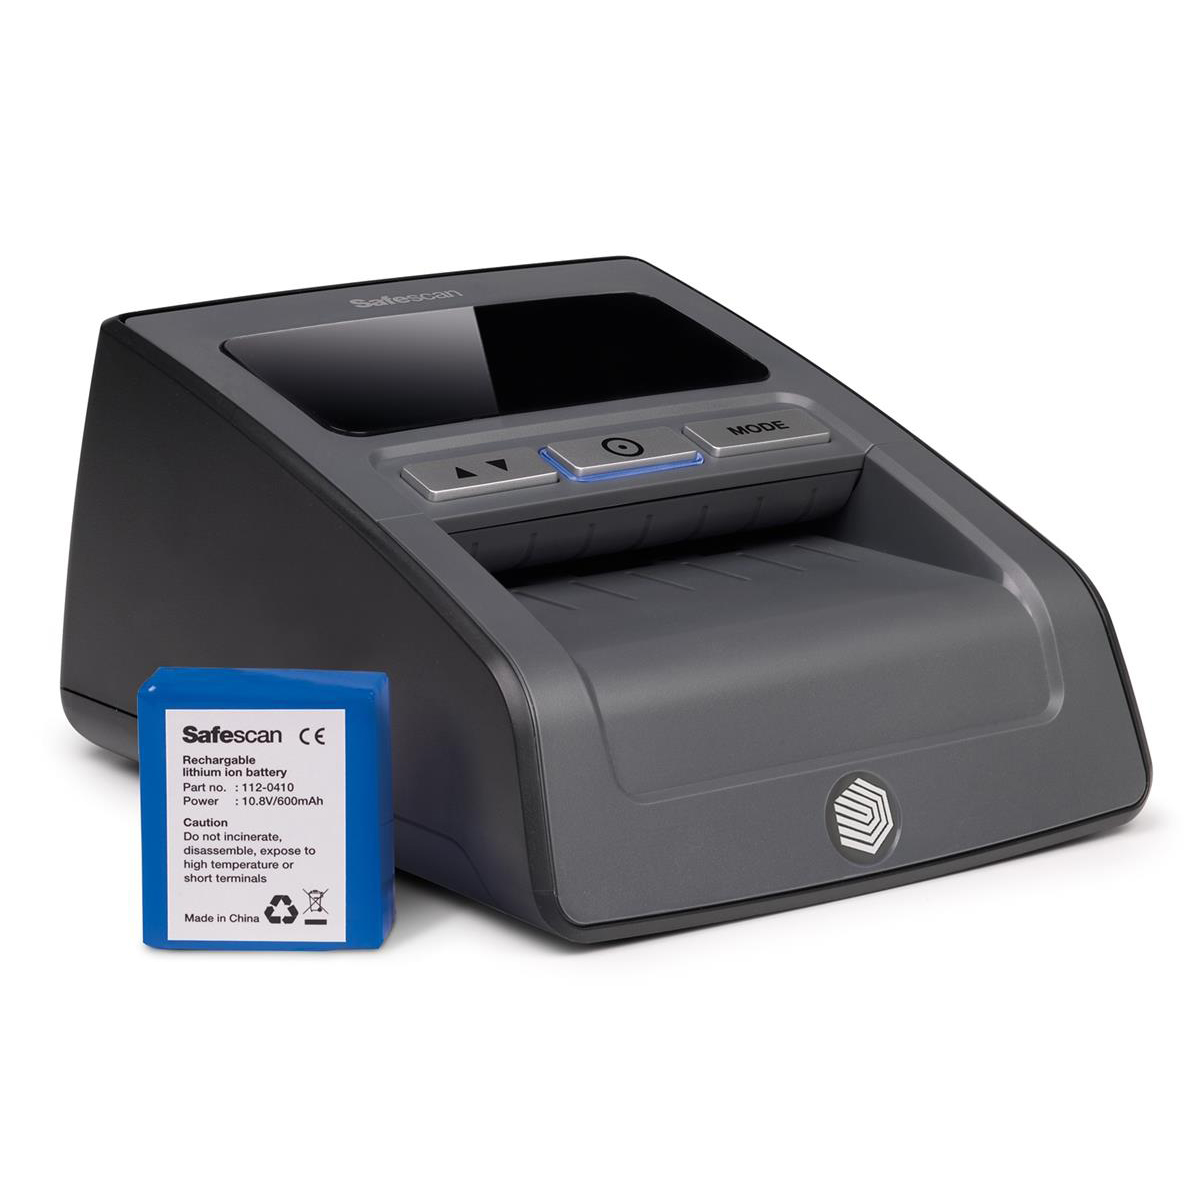 Safescan 155-S Counterfeit Detector 0.62kg L159xW128xH83mm Black Ref 112-0529